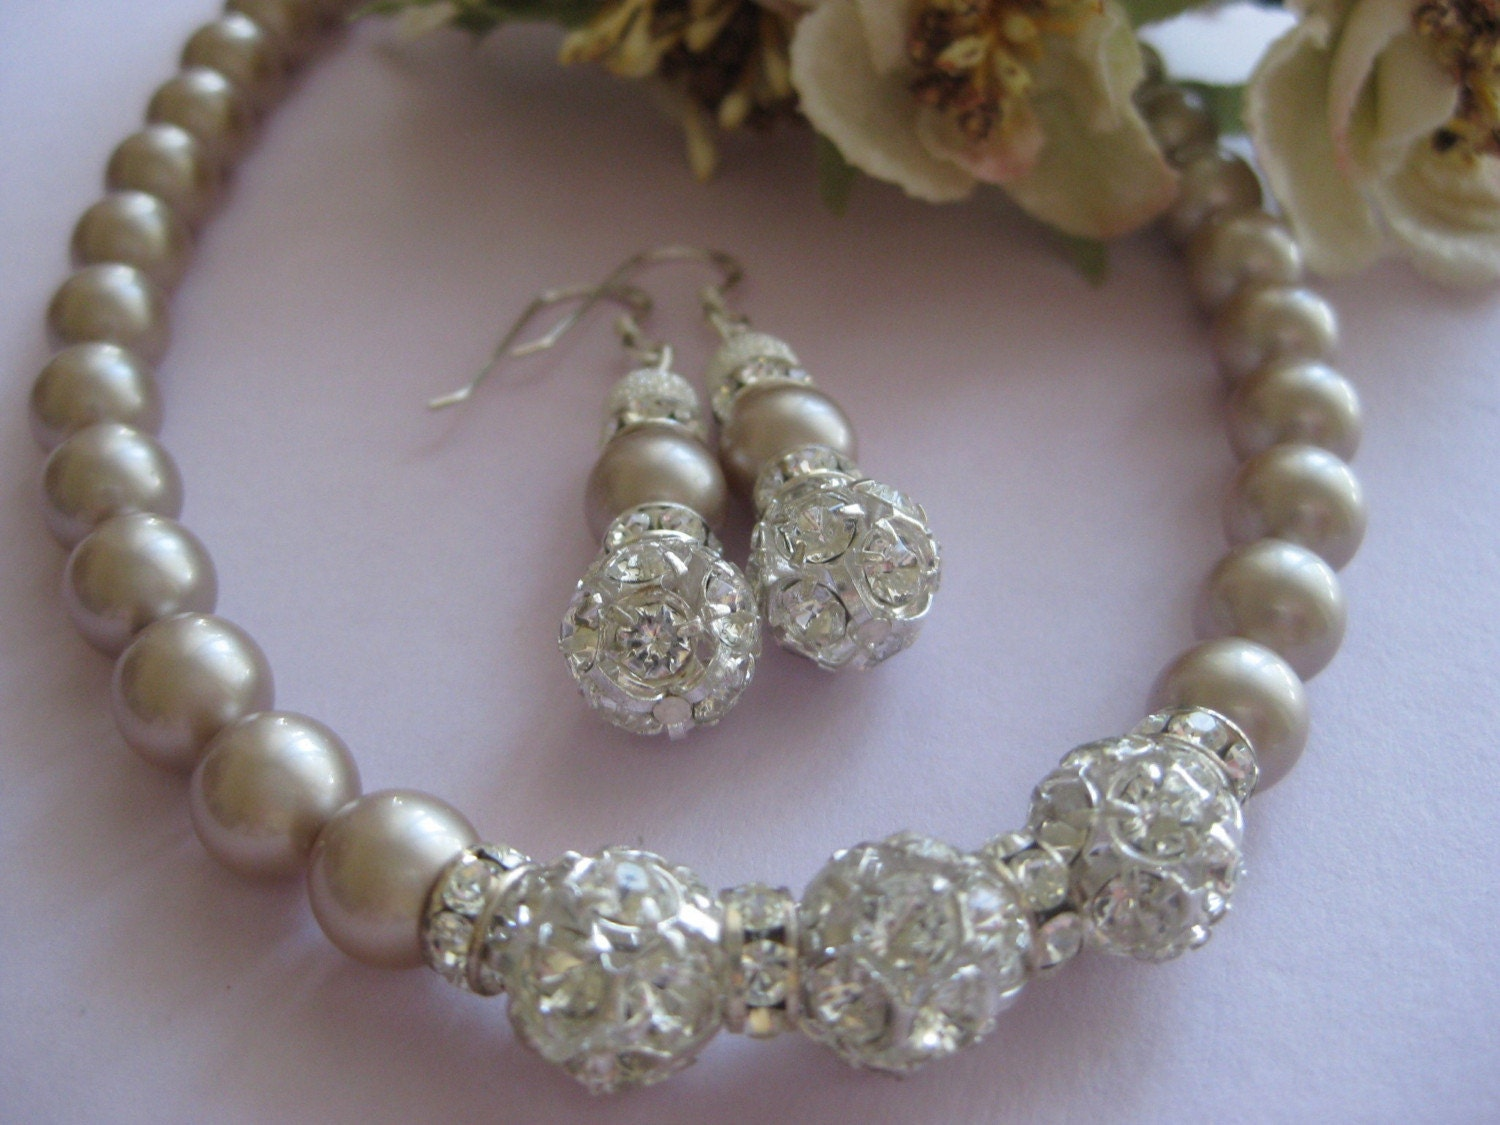 Necklace bridal set Swarovski Almond Pearls and Rhinestones Necklace and Earrings